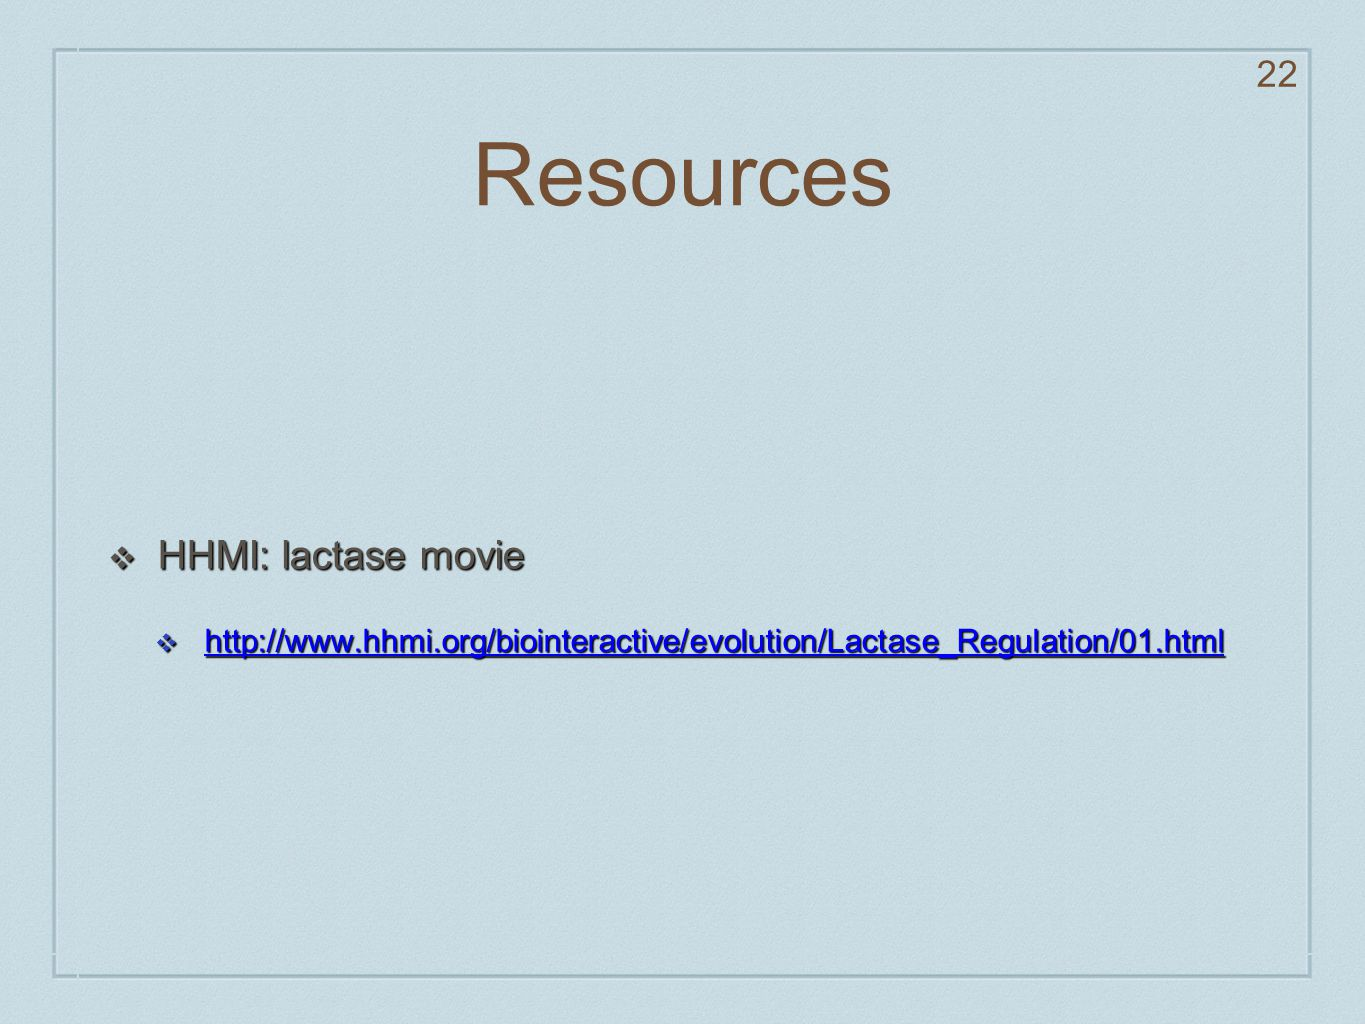 Resources ❖ HHMI: lactase movie ❖ http://www.hhmi.org/biointeractive/evolution/Lactase_Regulation/01.html http://www.hhmi.org/biointeractive/evolution